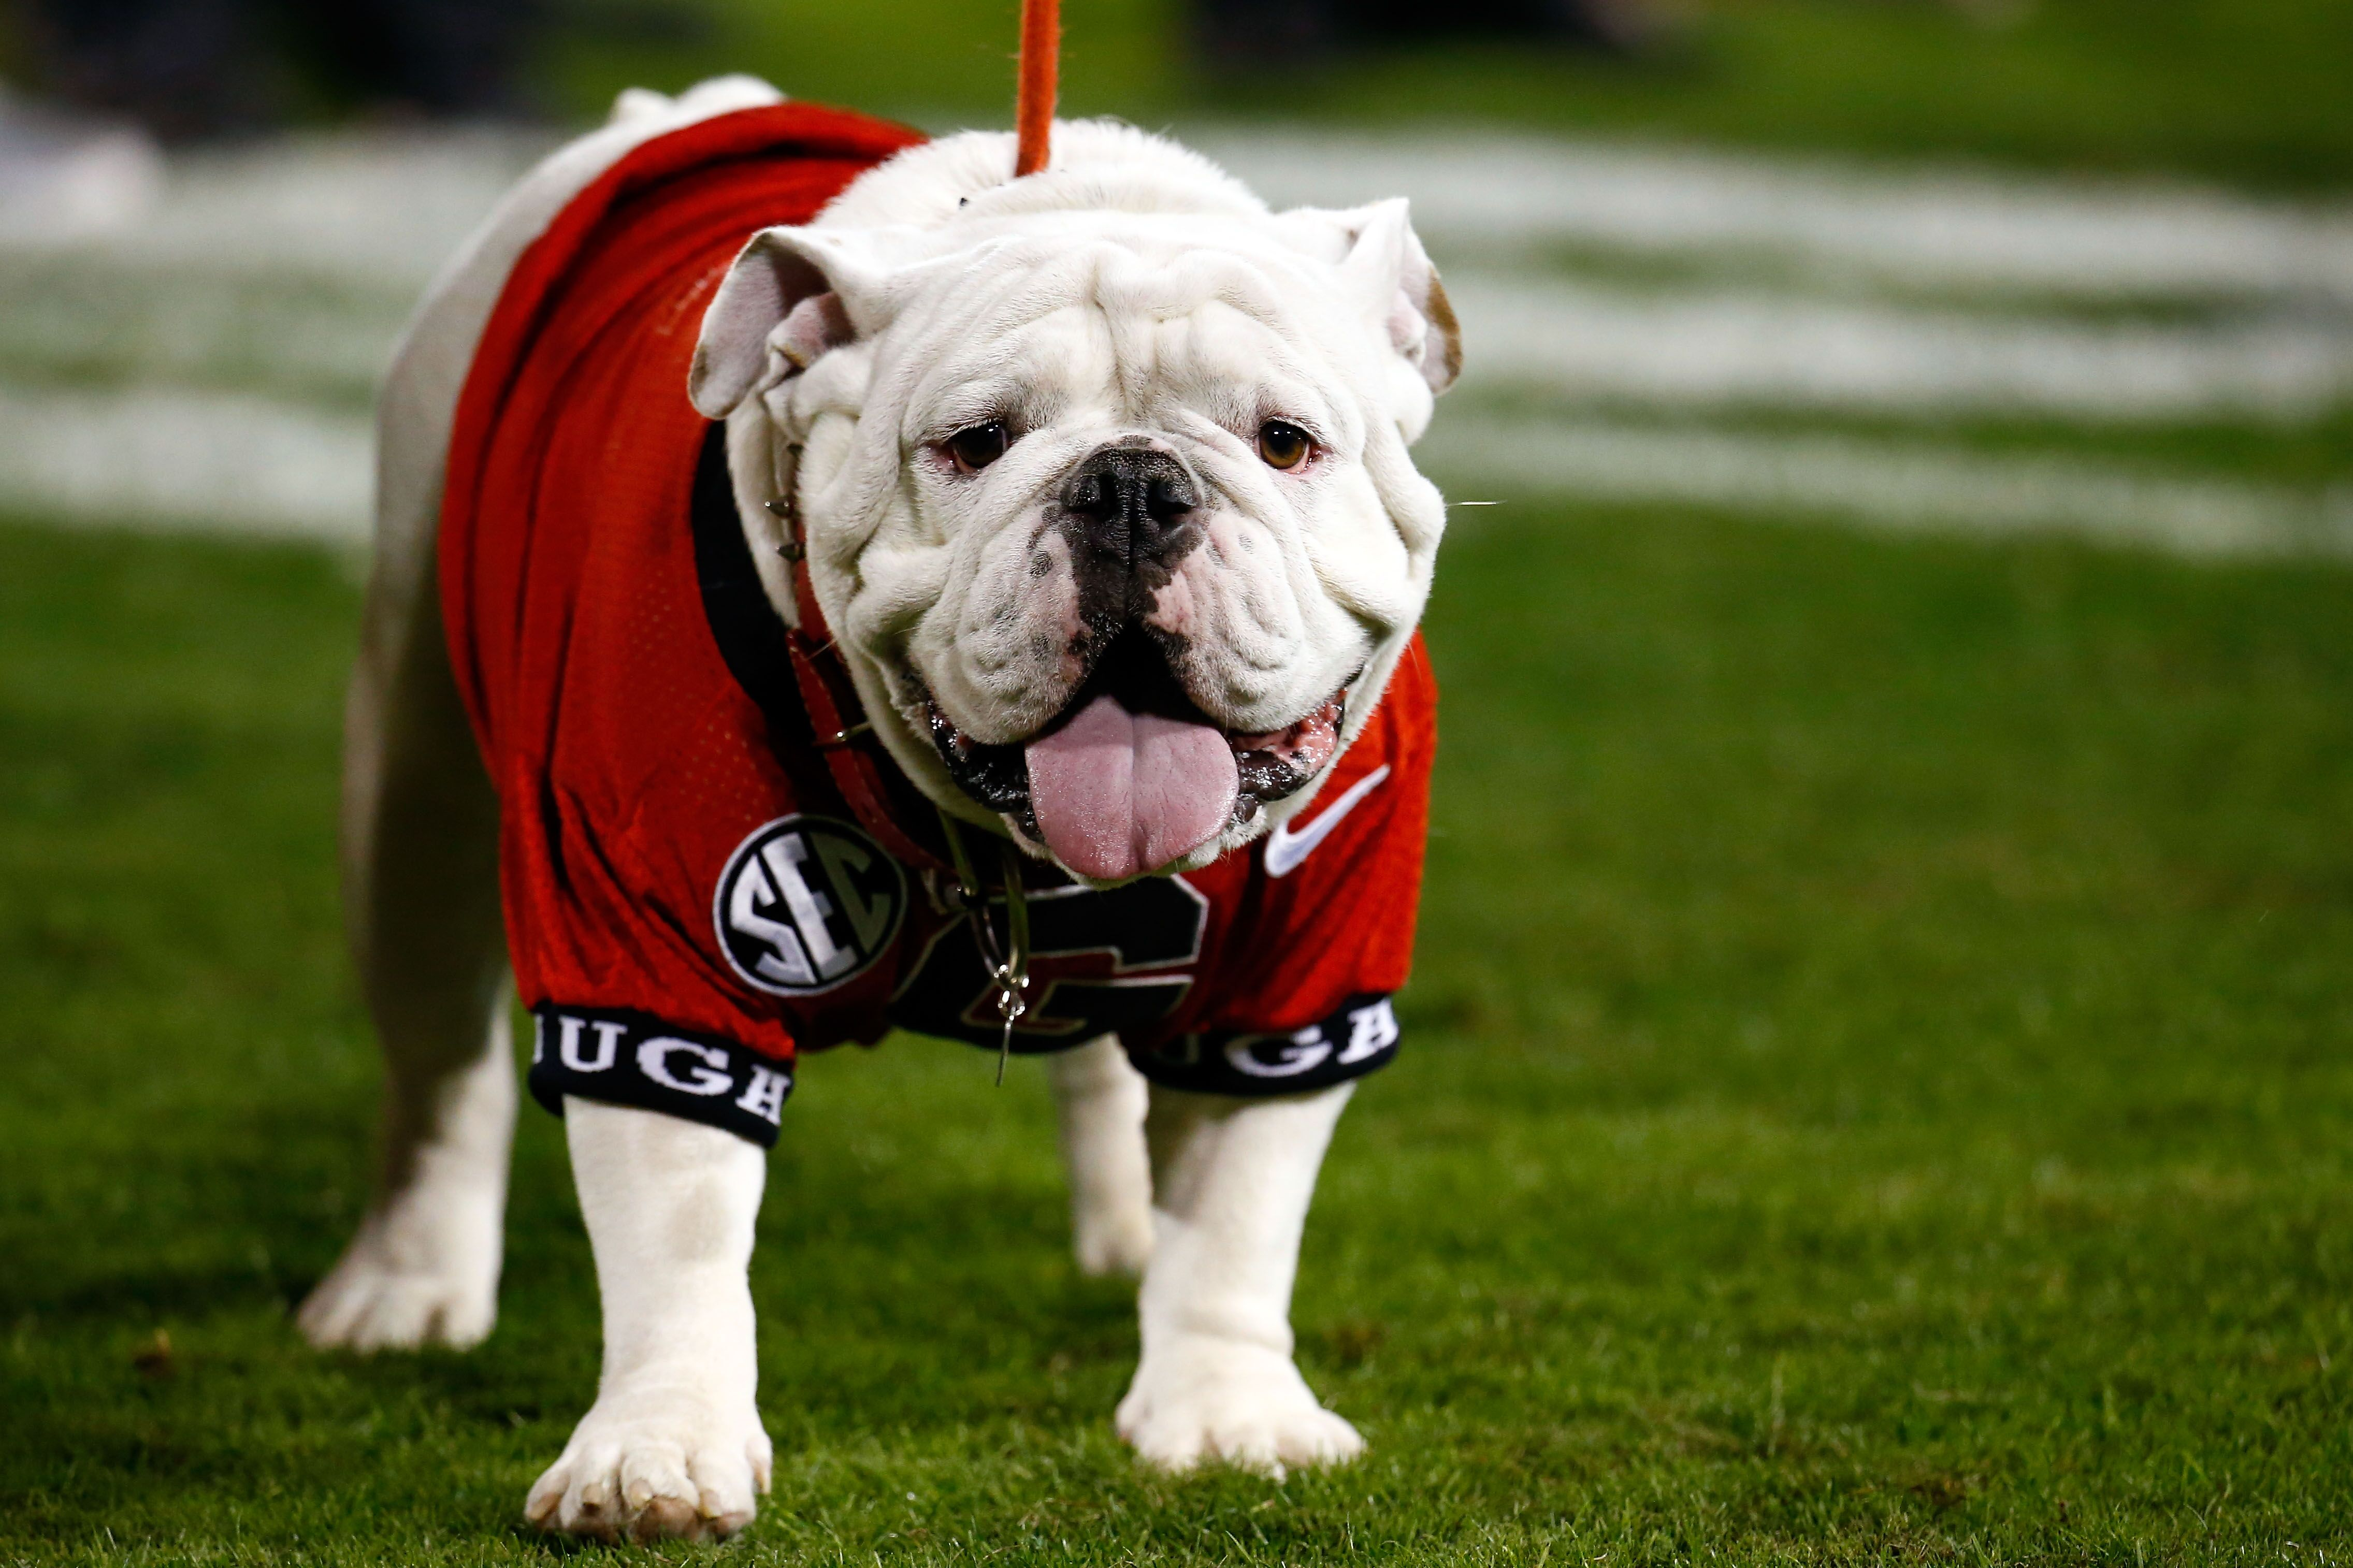 Canine college football roundup for Championship Saturday